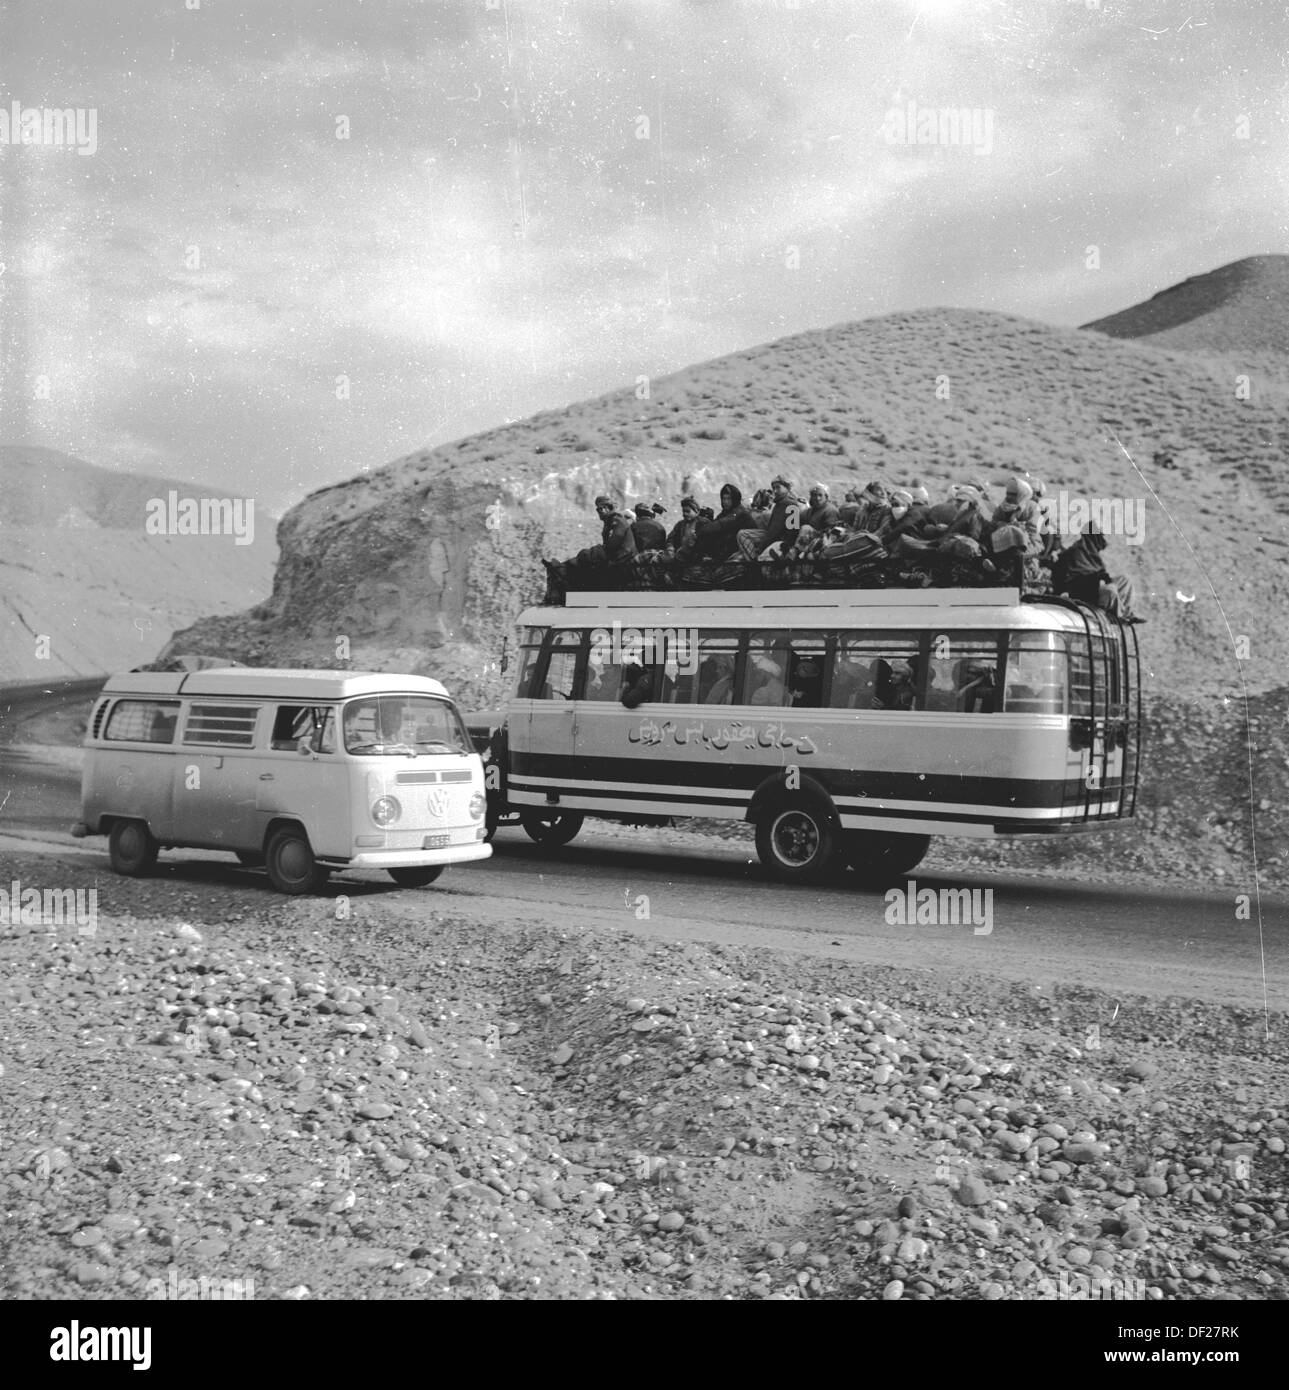 Historical picture from the1950s showing a fully loaded Afghan bus - with passengers perched on the roof -  and a VW camper van passing on a rocky mountain road in Afghanistan. - Stock Image